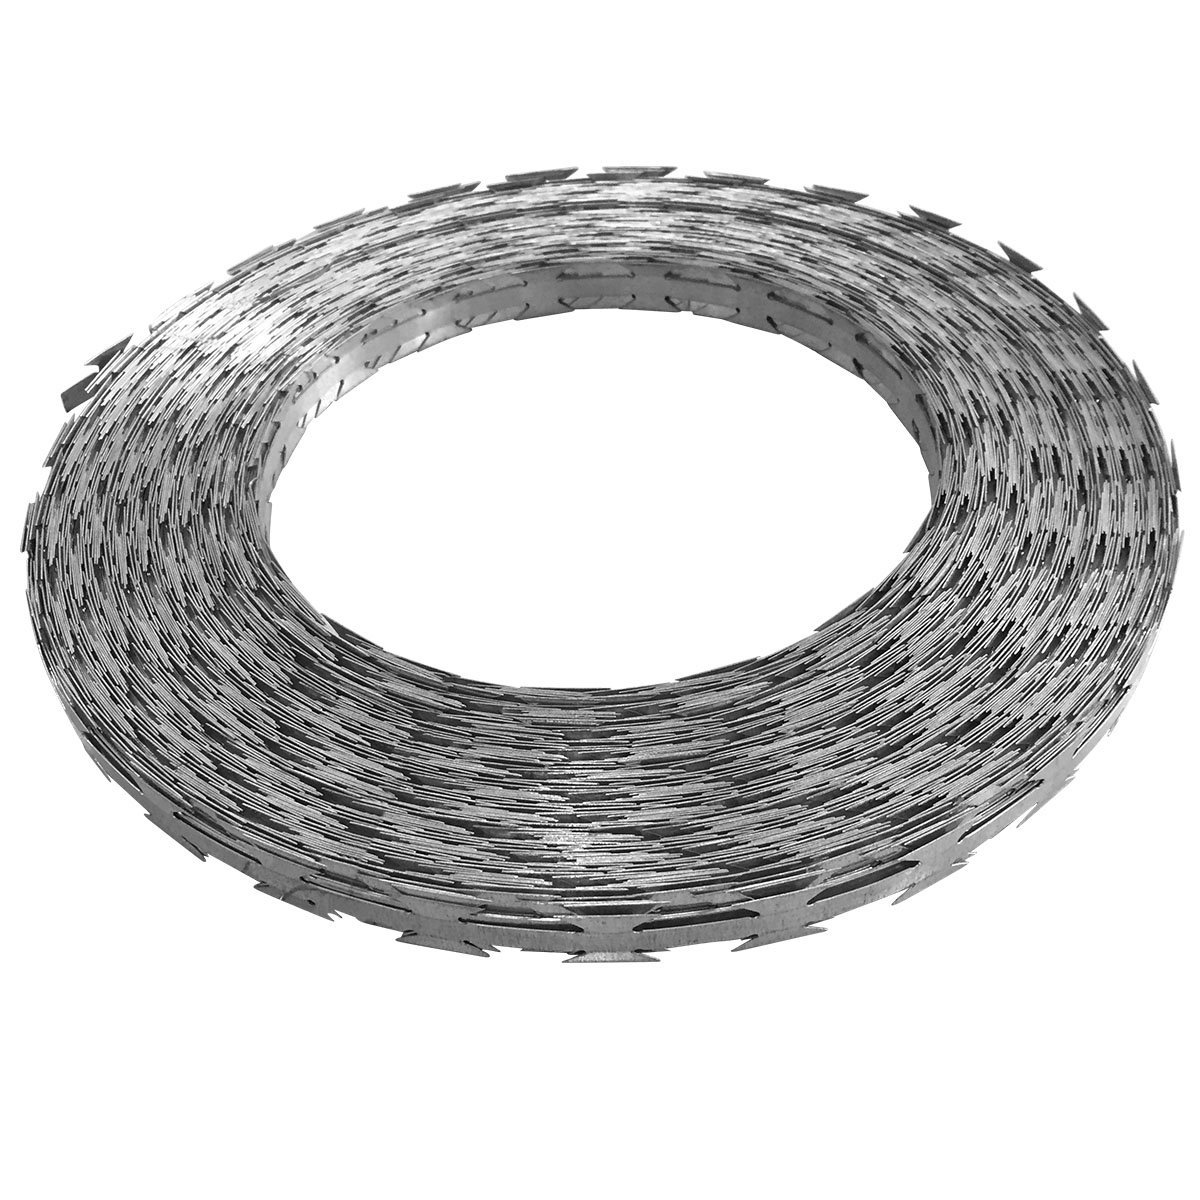 vidaXL Razor Wire 100m Coiled Security Barb Fence with Plastic ...